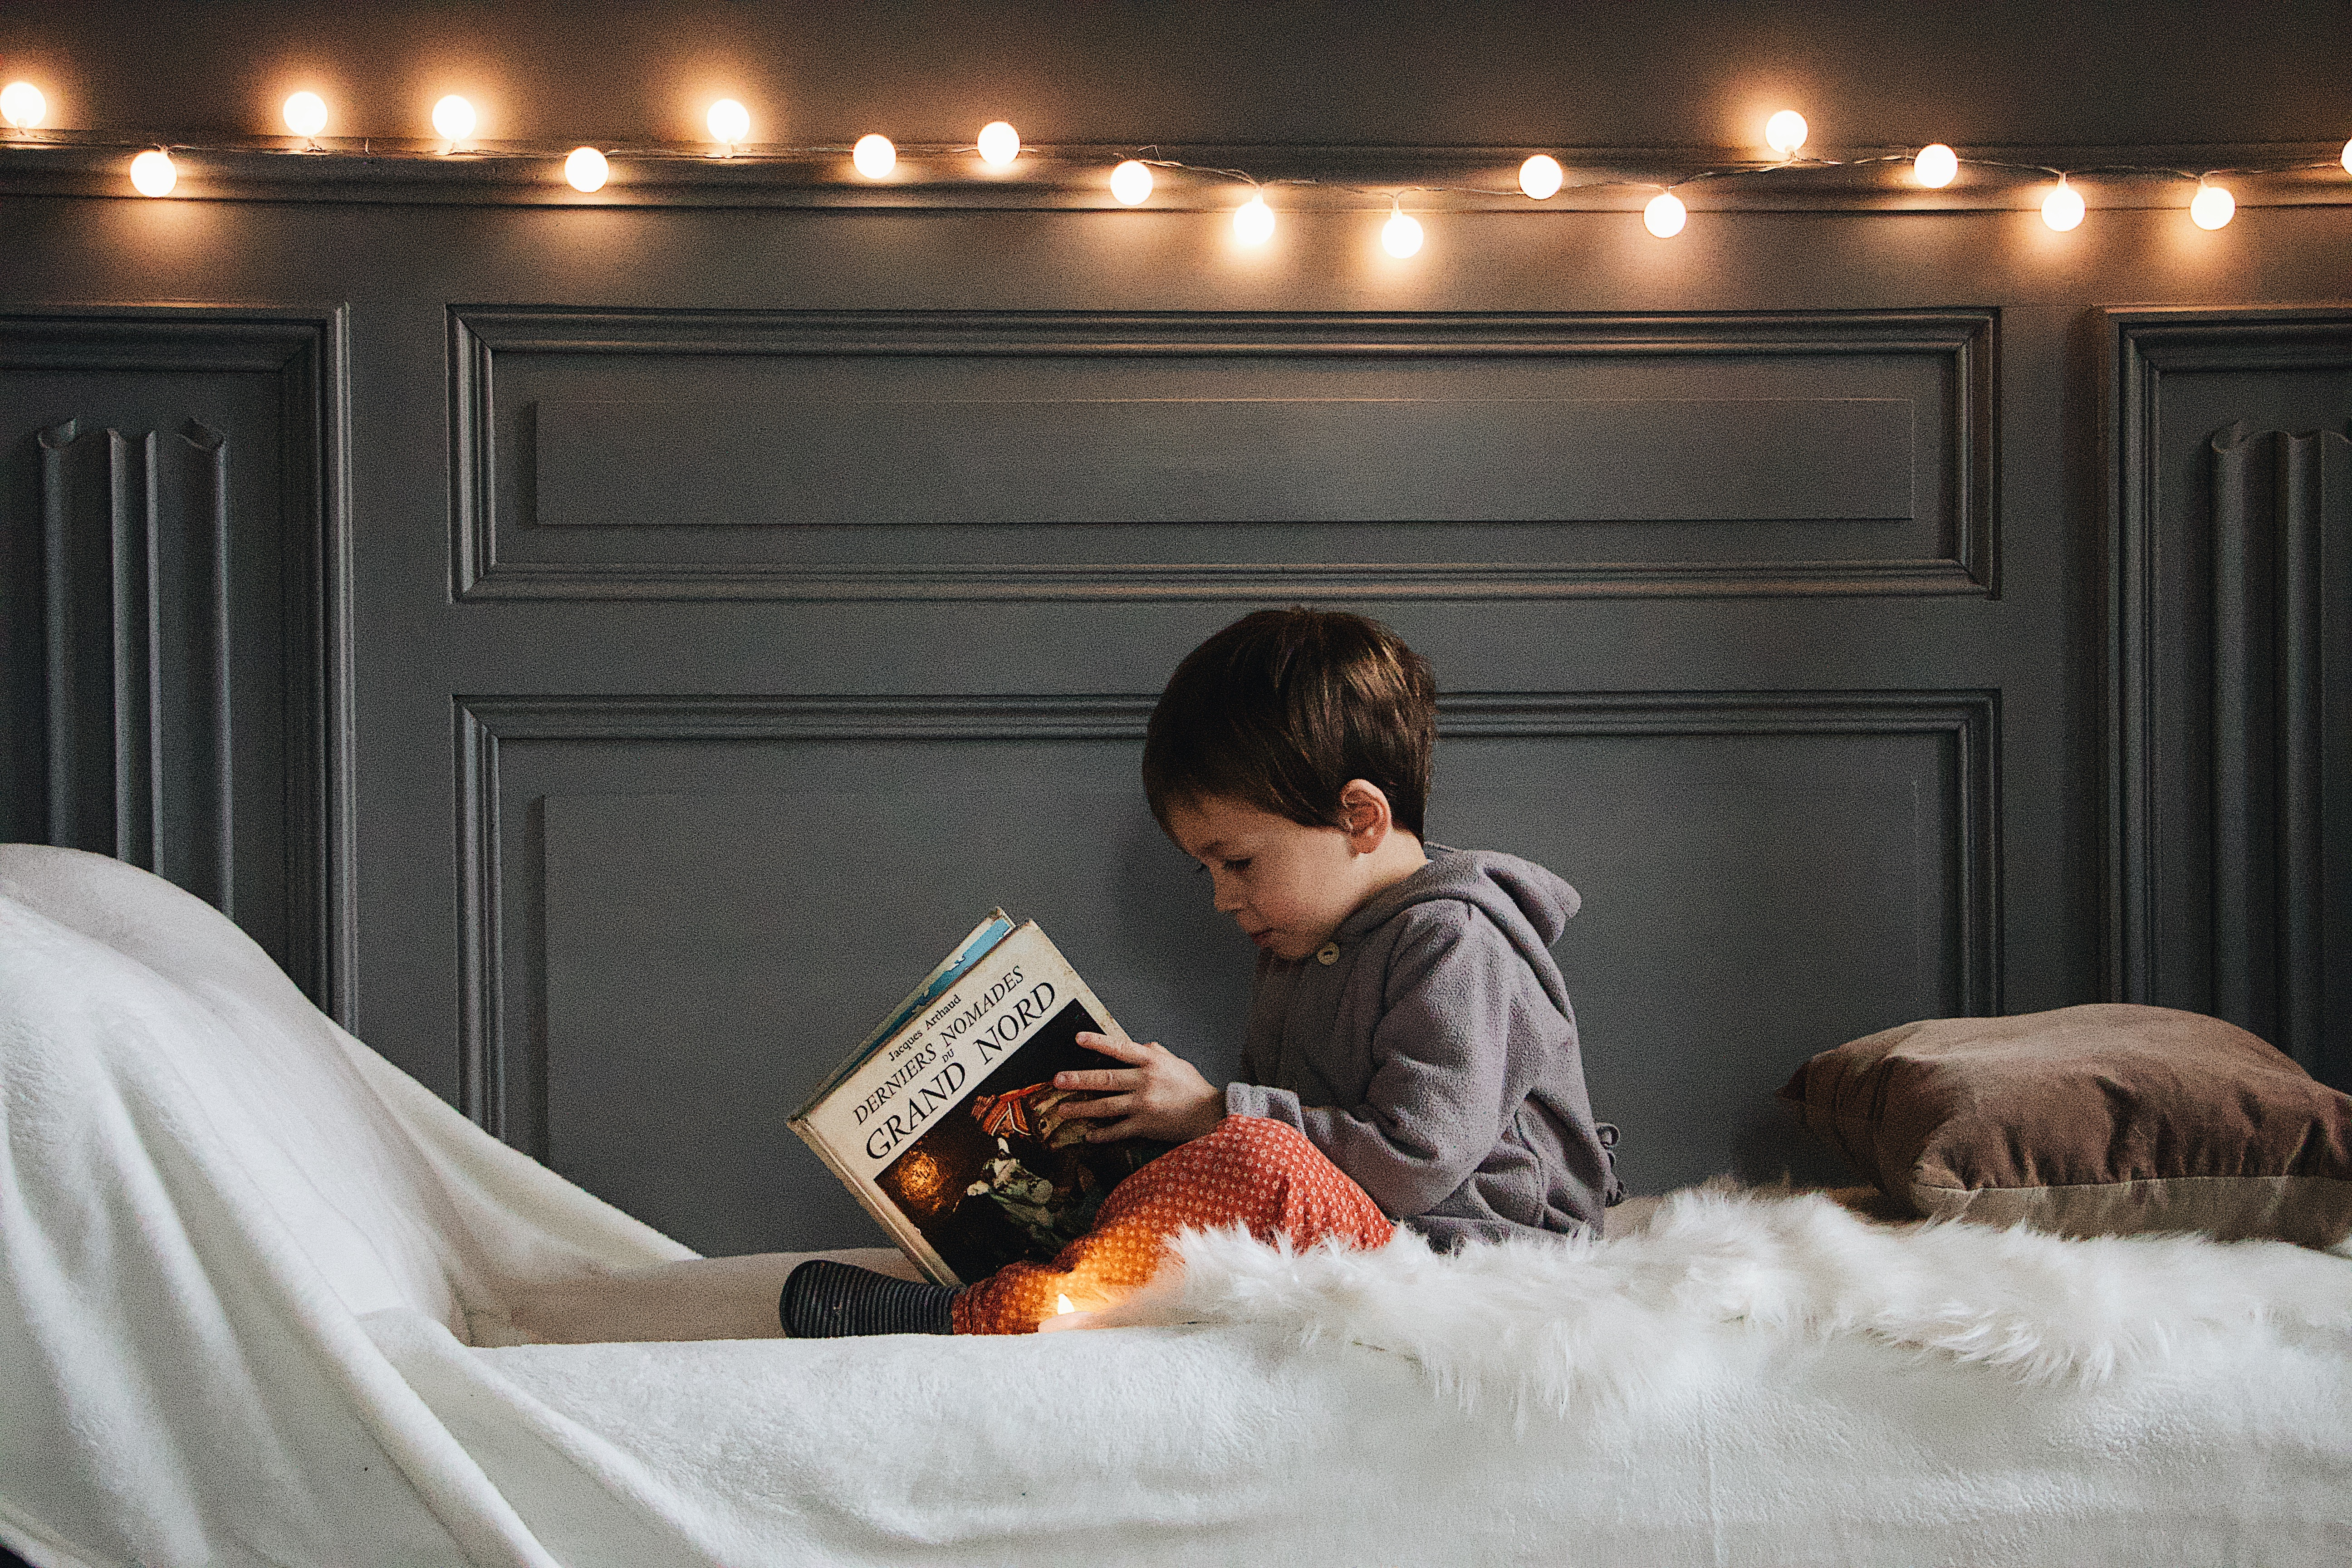 A kid reading book on his bed